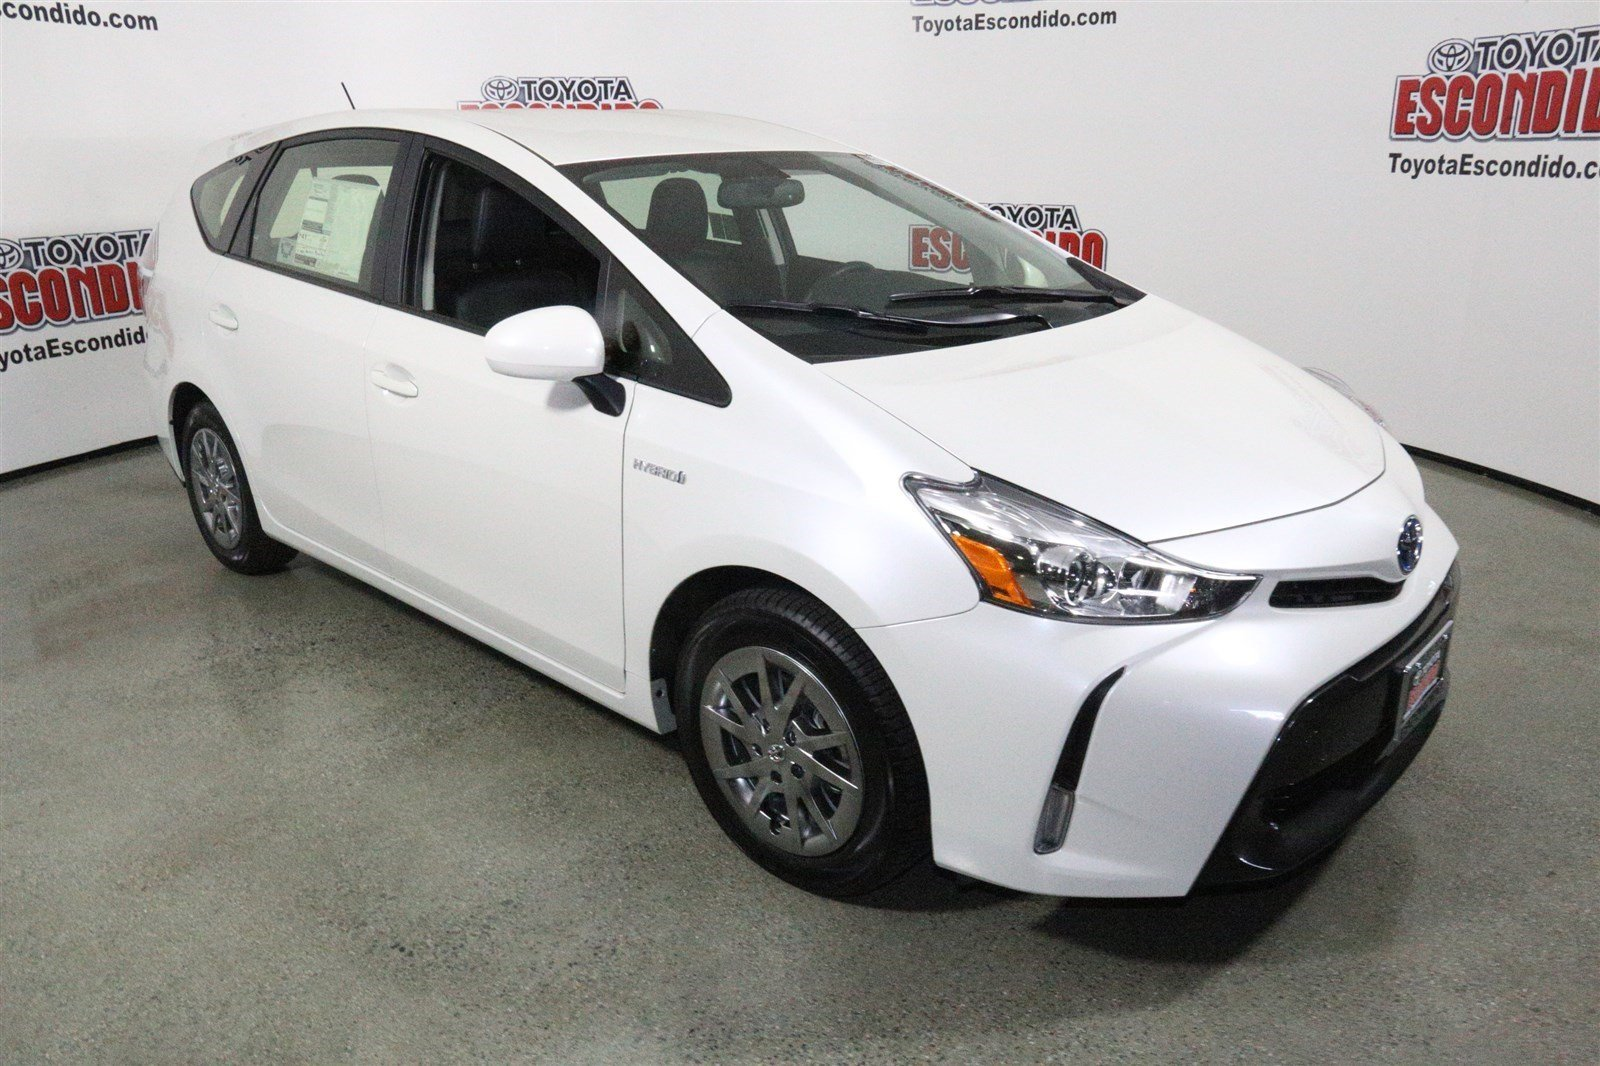 new 2017 toyota prius v four station wagon in escondido hj032898 toyota escondido. Black Bedroom Furniture Sets. Home Design Ideas